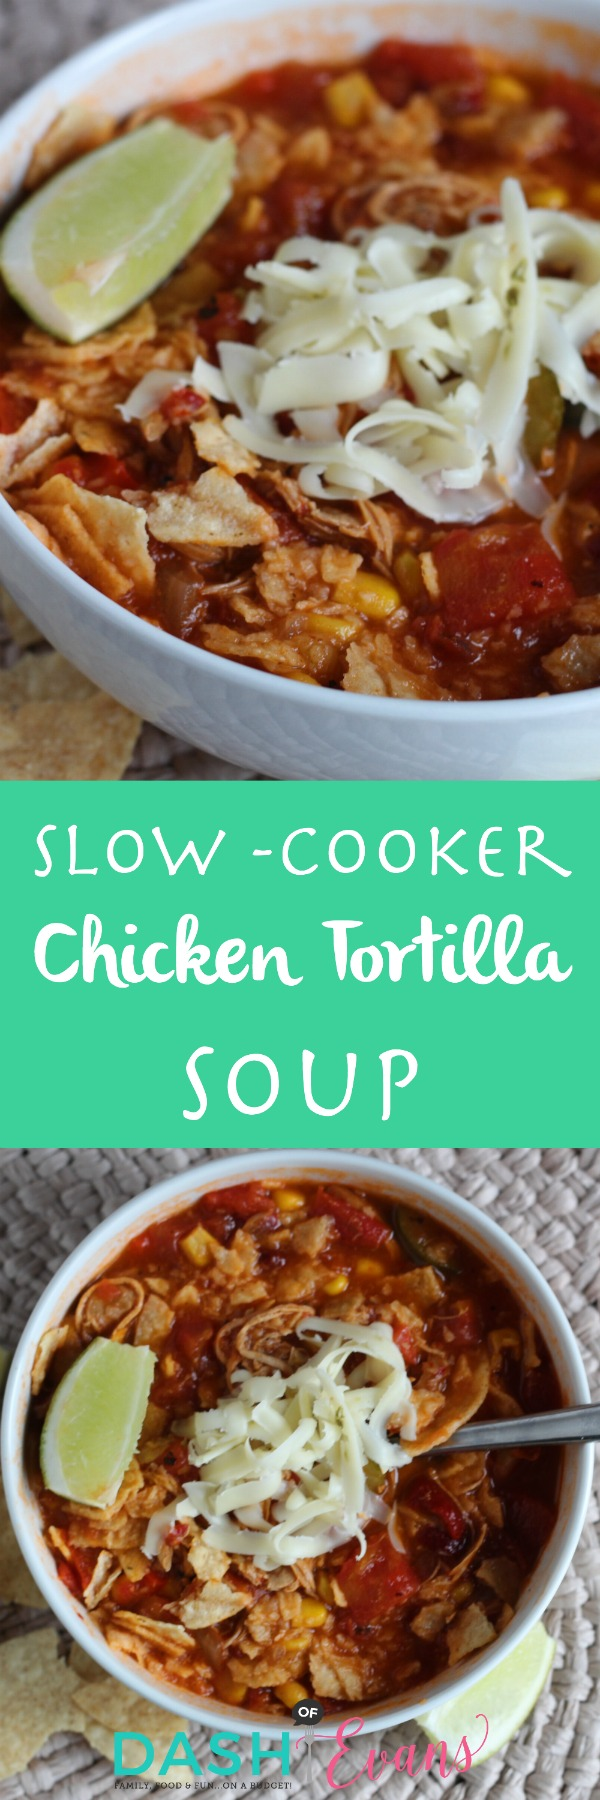 Slow-Cooker Chicken Tortilla Soup - Dash Of Evans